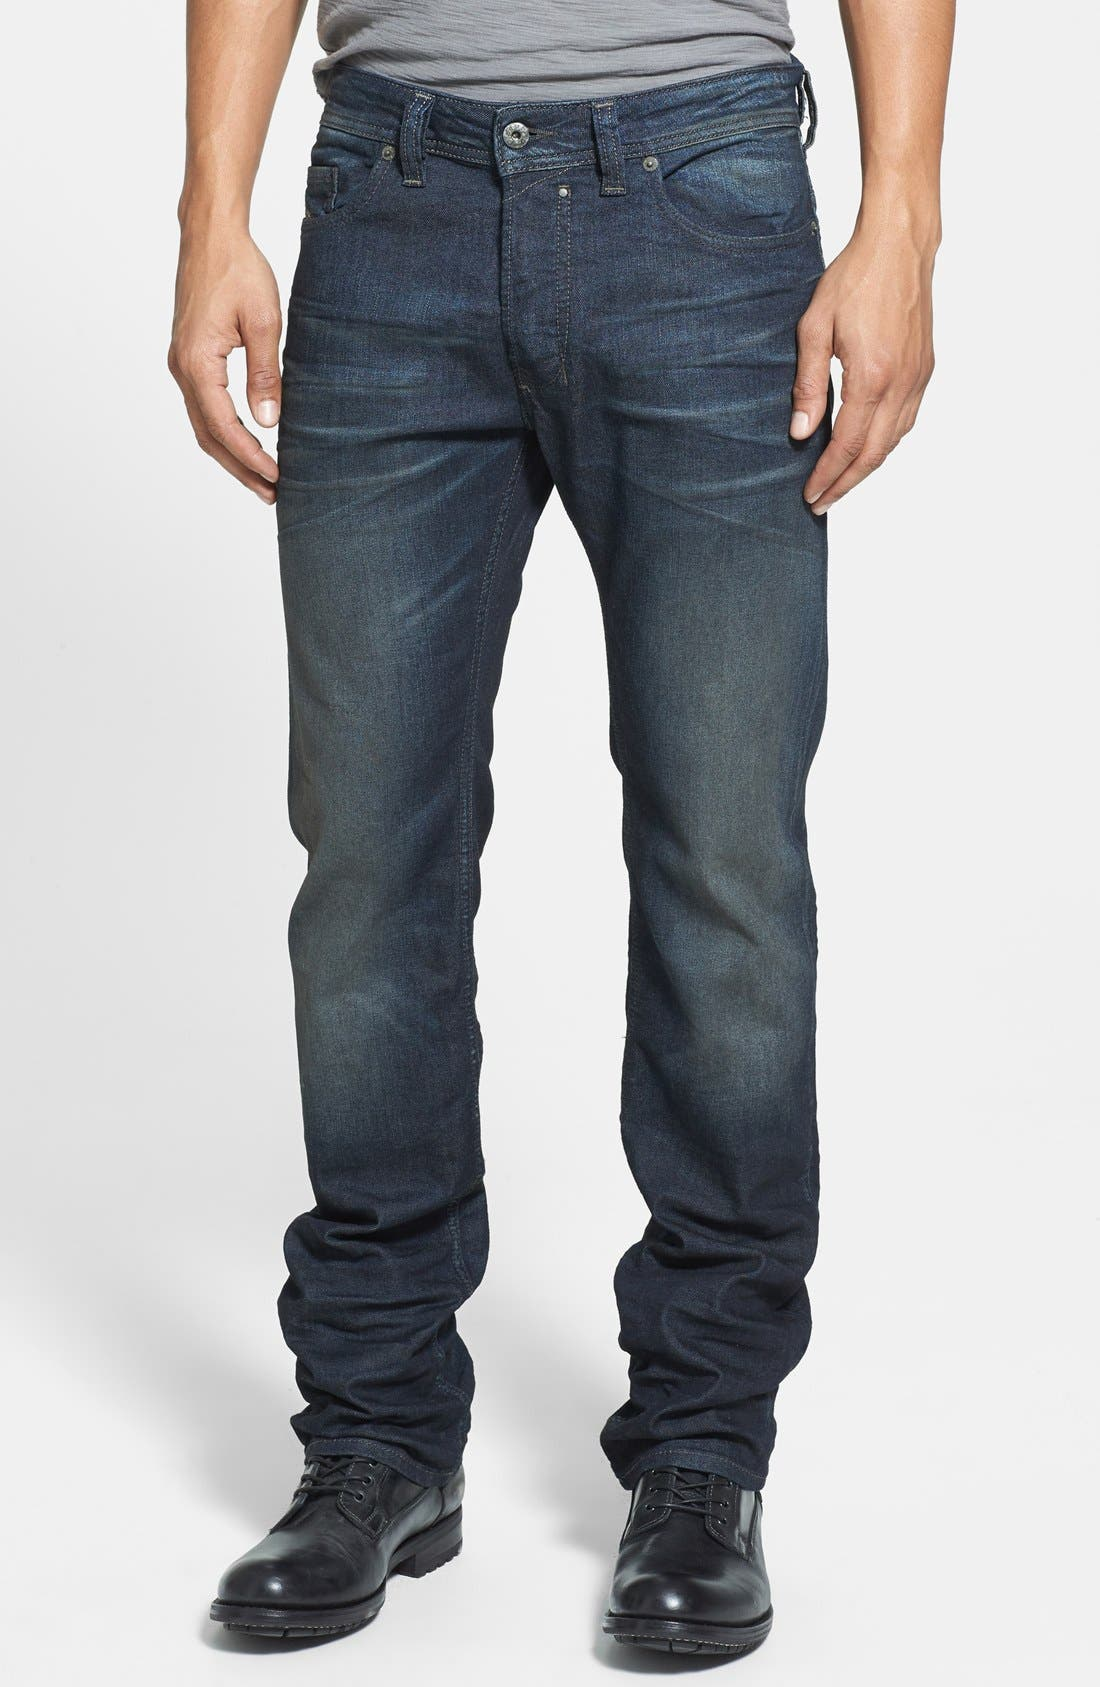 'Safado' Slim Fit Jeans,                         Main,                         color, 827K